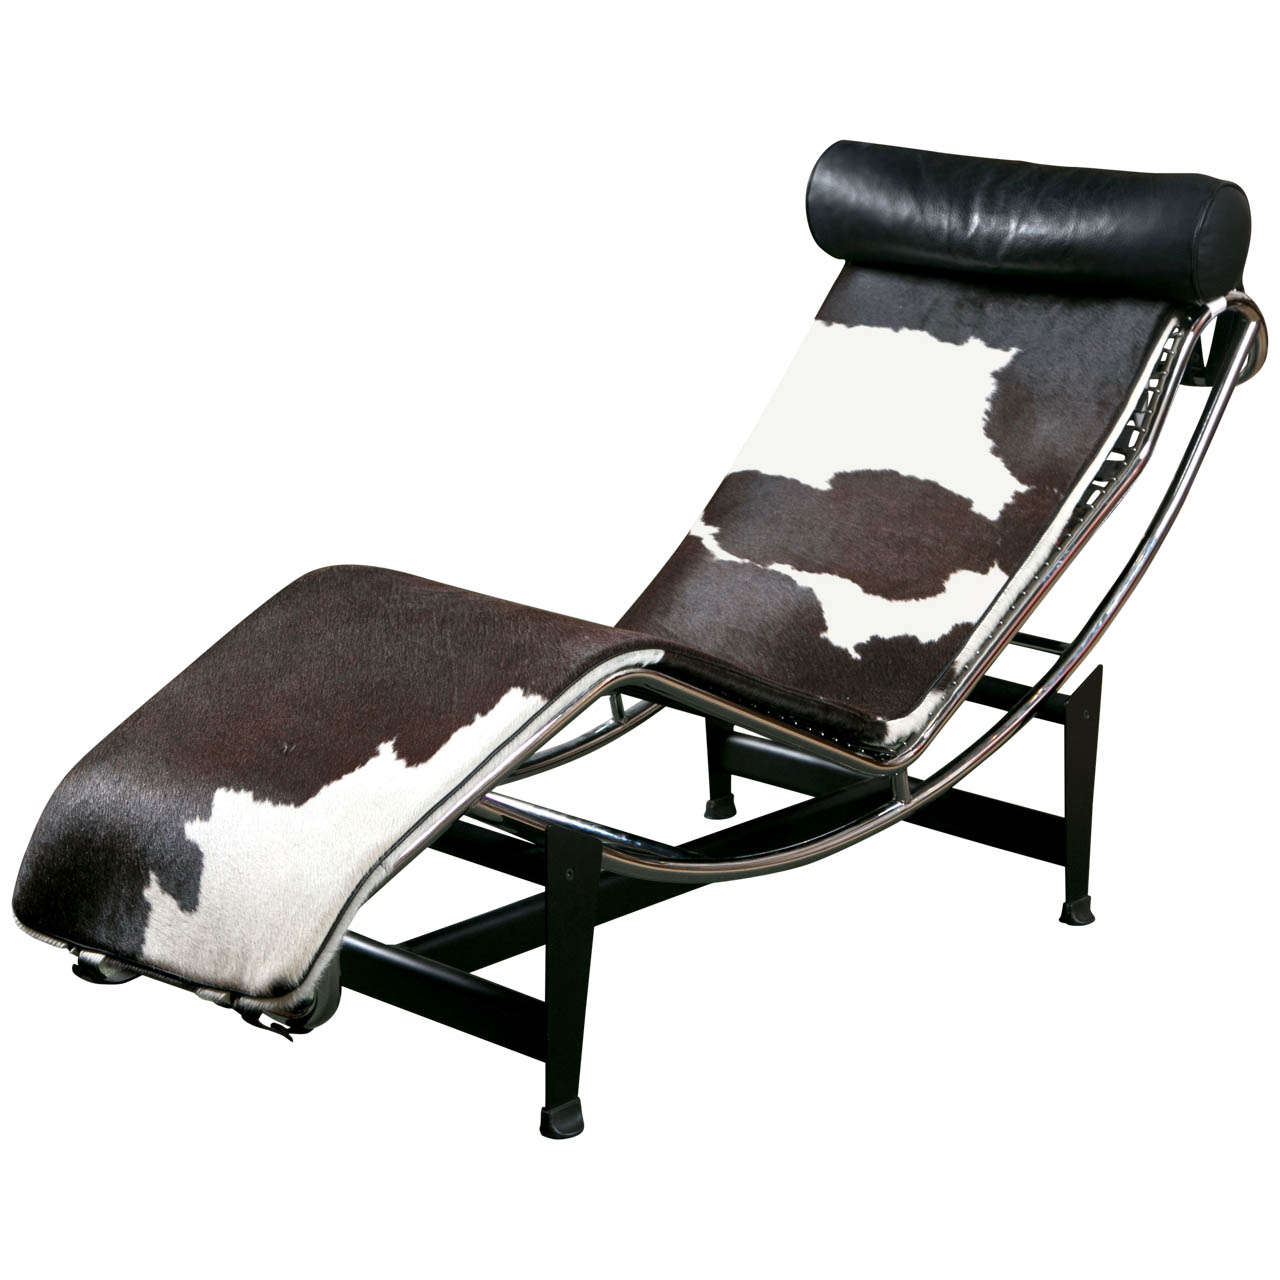 le corbusier chaise longue at 1stdibs